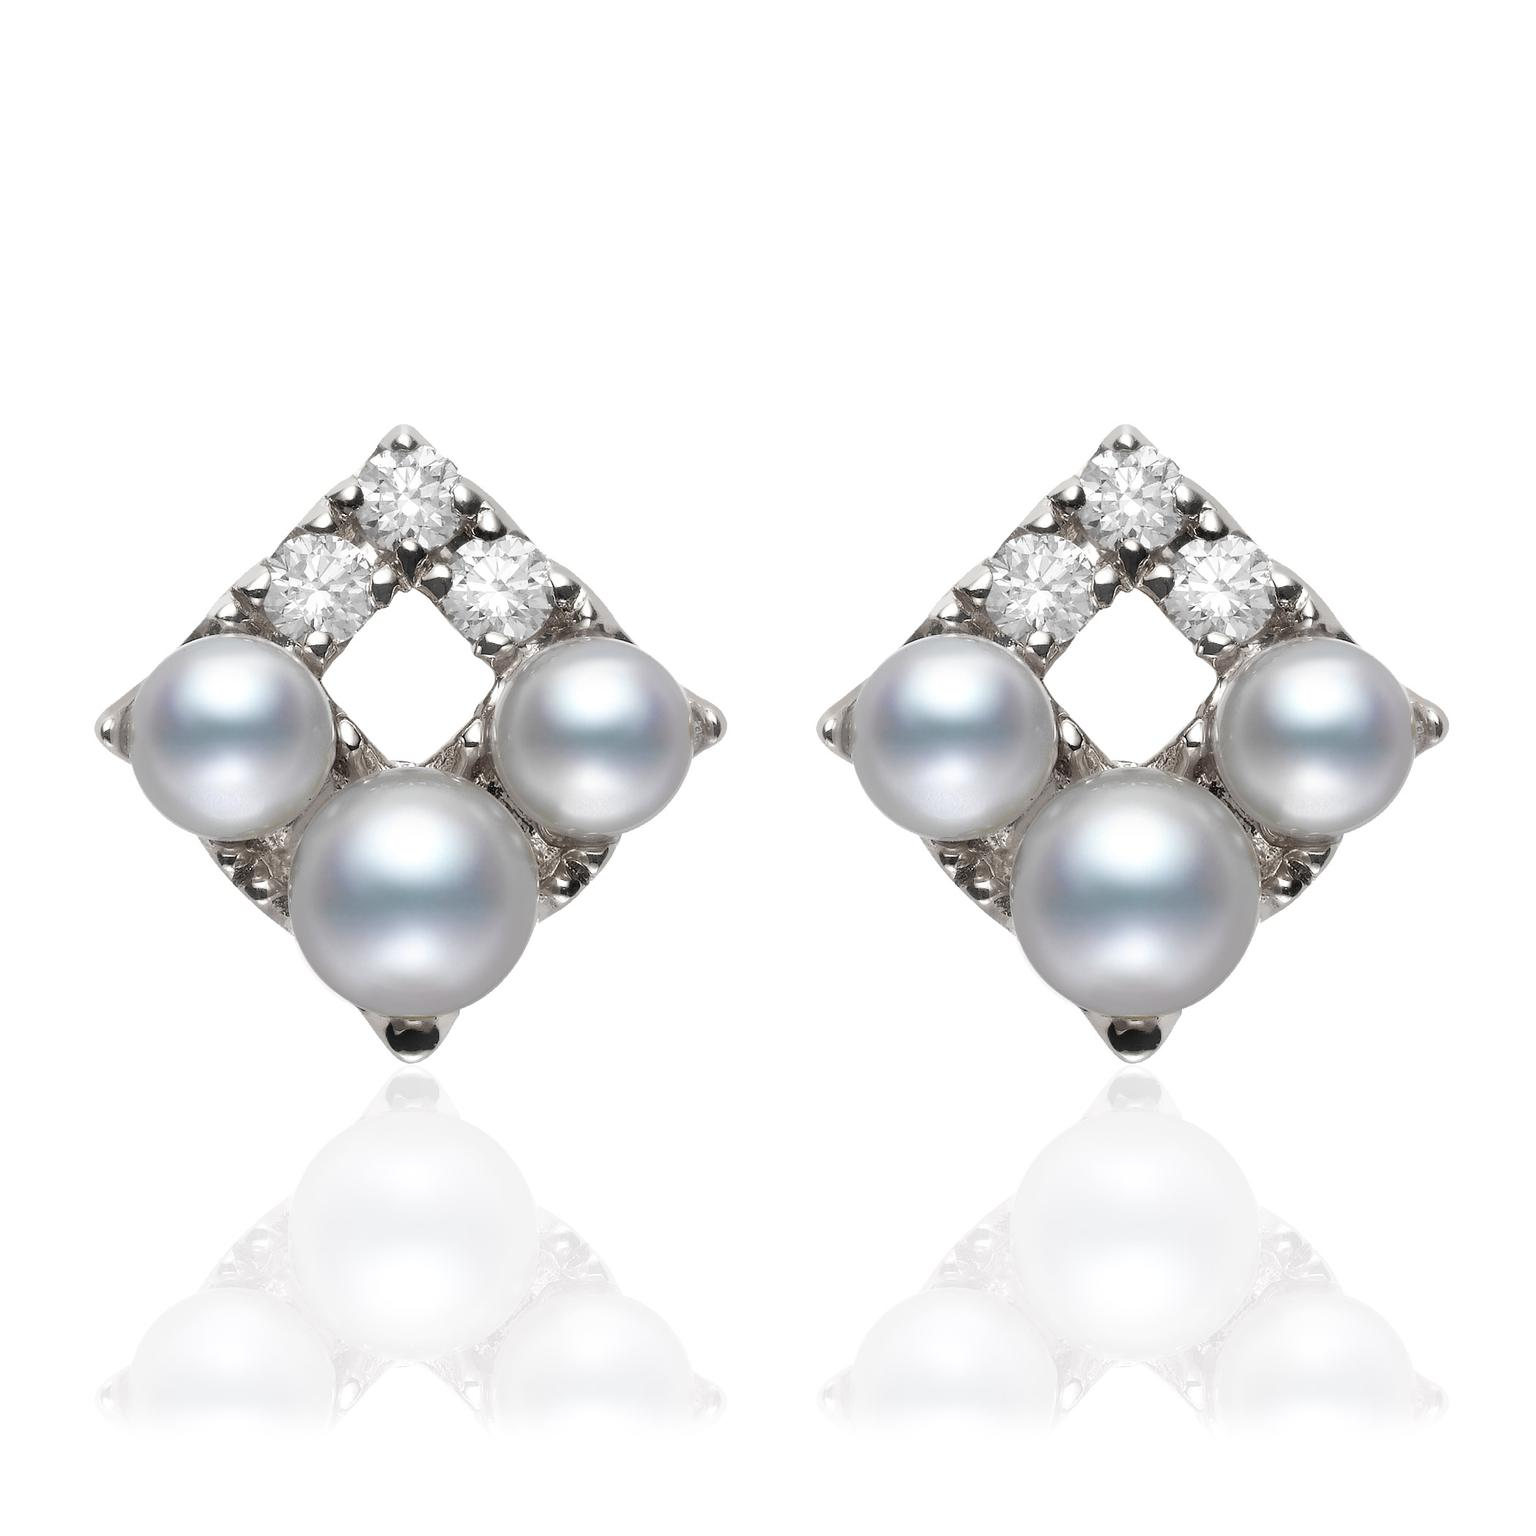 Mikomoto-Snowflake-Earrings-zoom